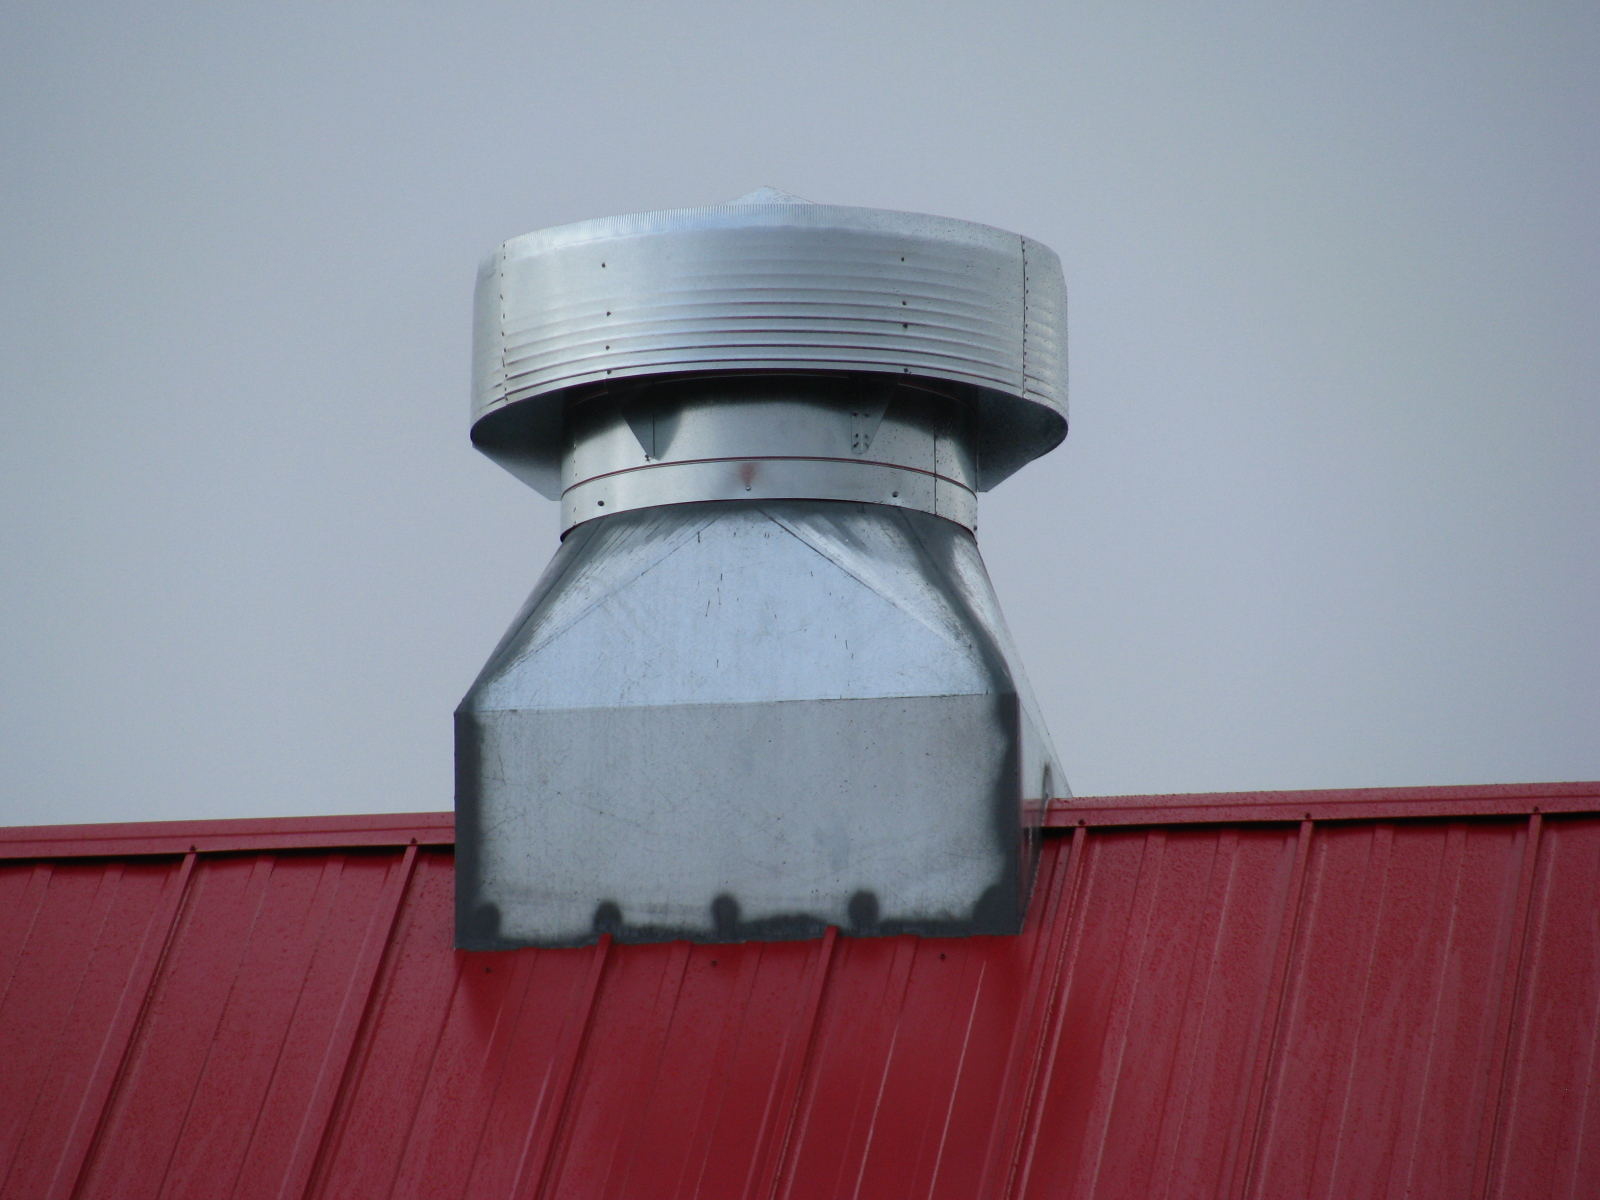 Commercial Roof Vents By Luxury Metals